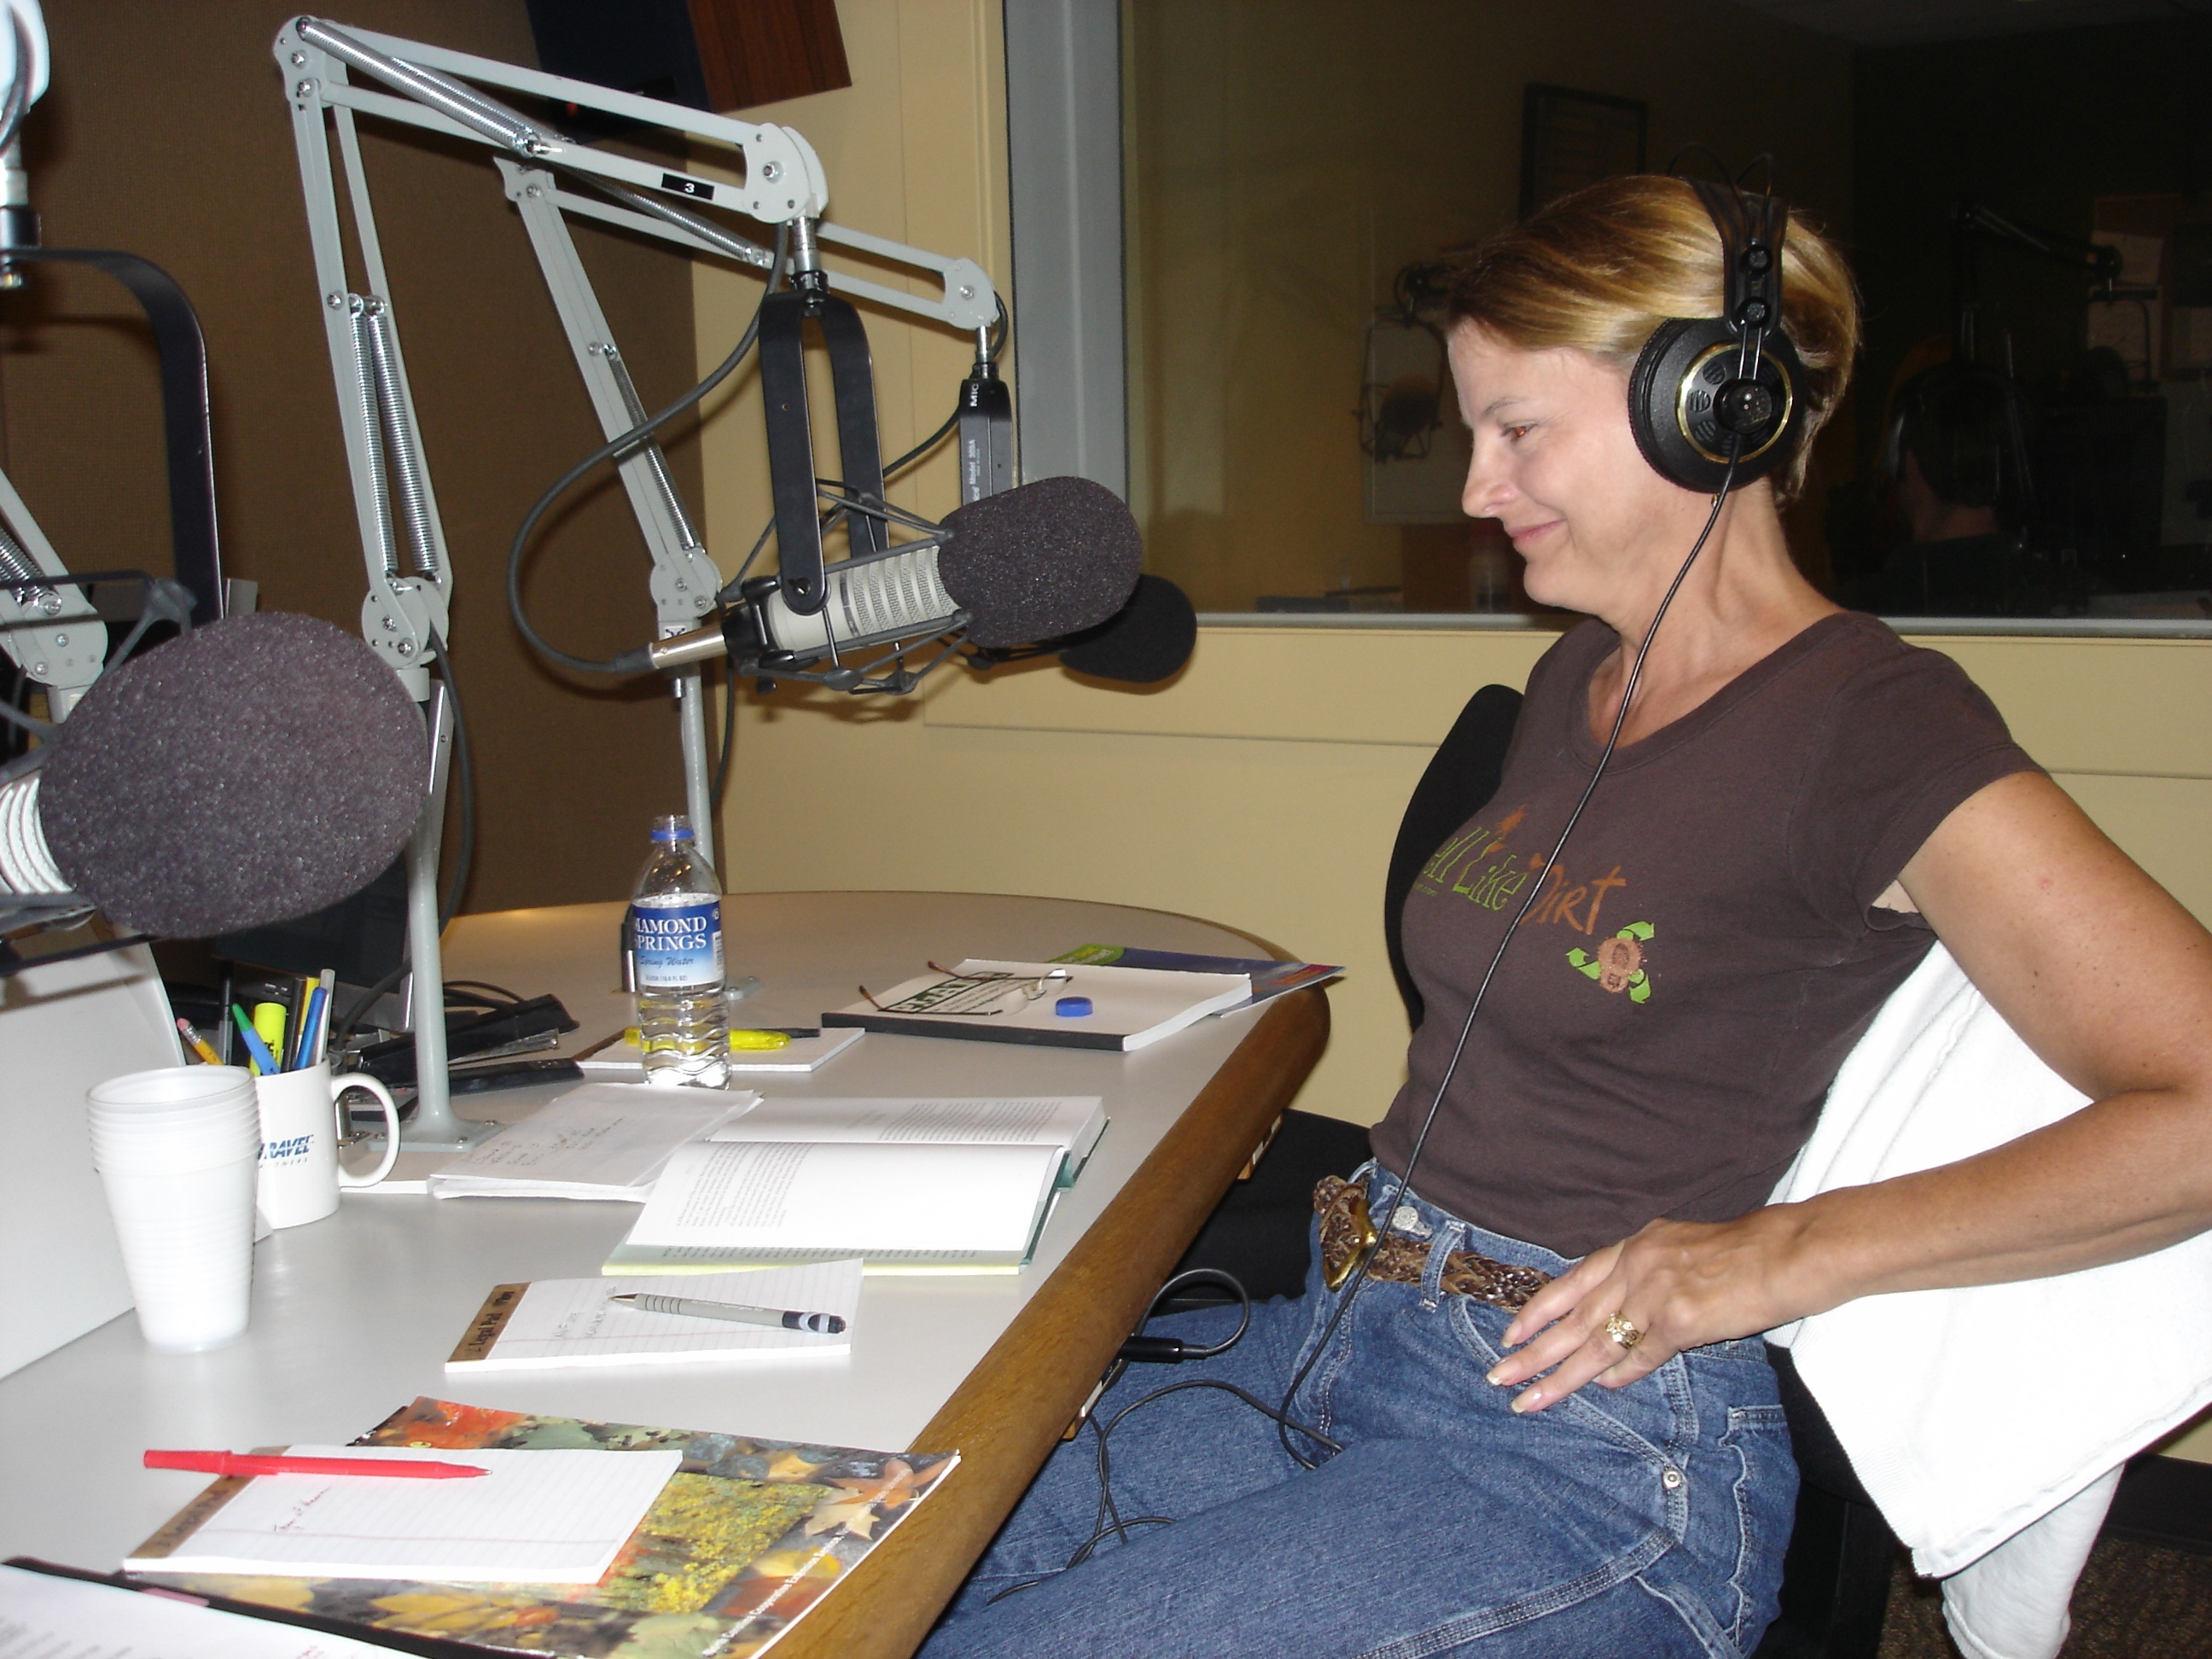 WFAE 90.7 FM Charlotte Talks with Mike Collins